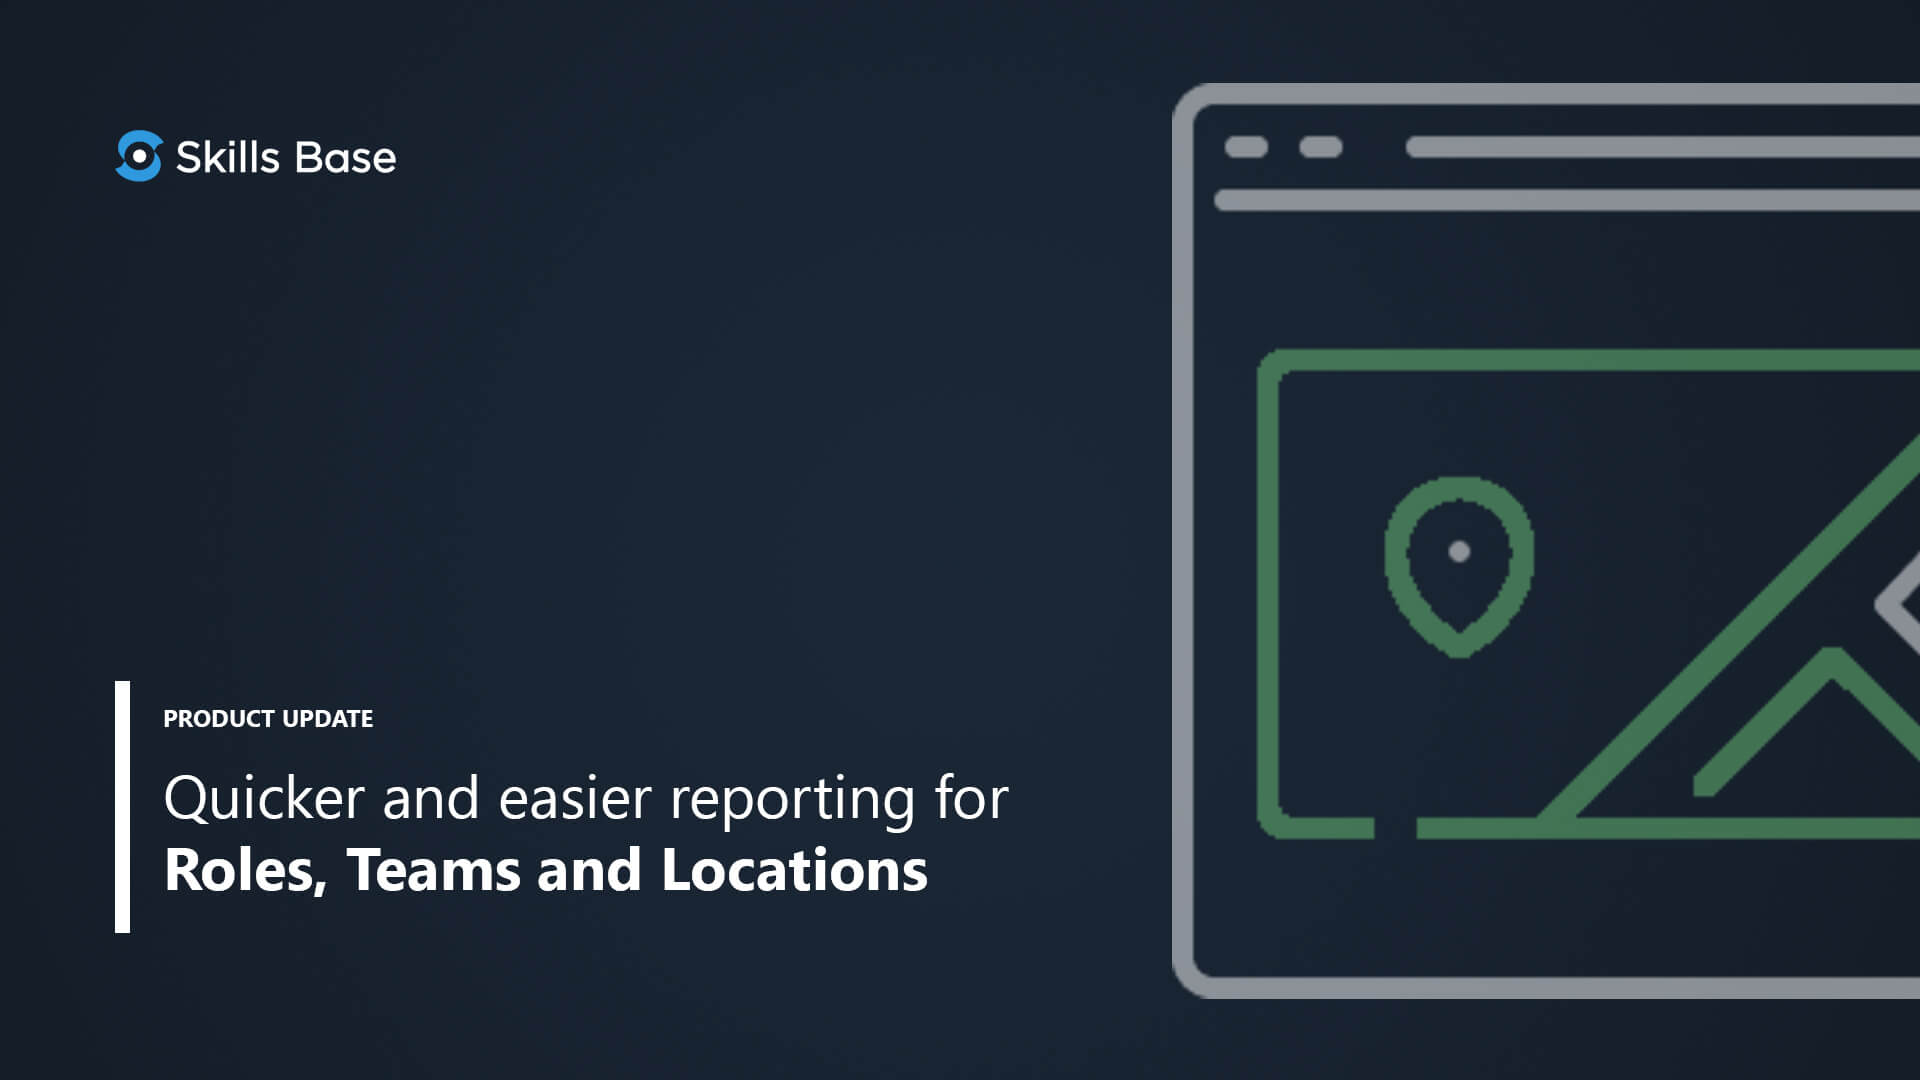 Quicker and easier reporting for roles, teams and locations